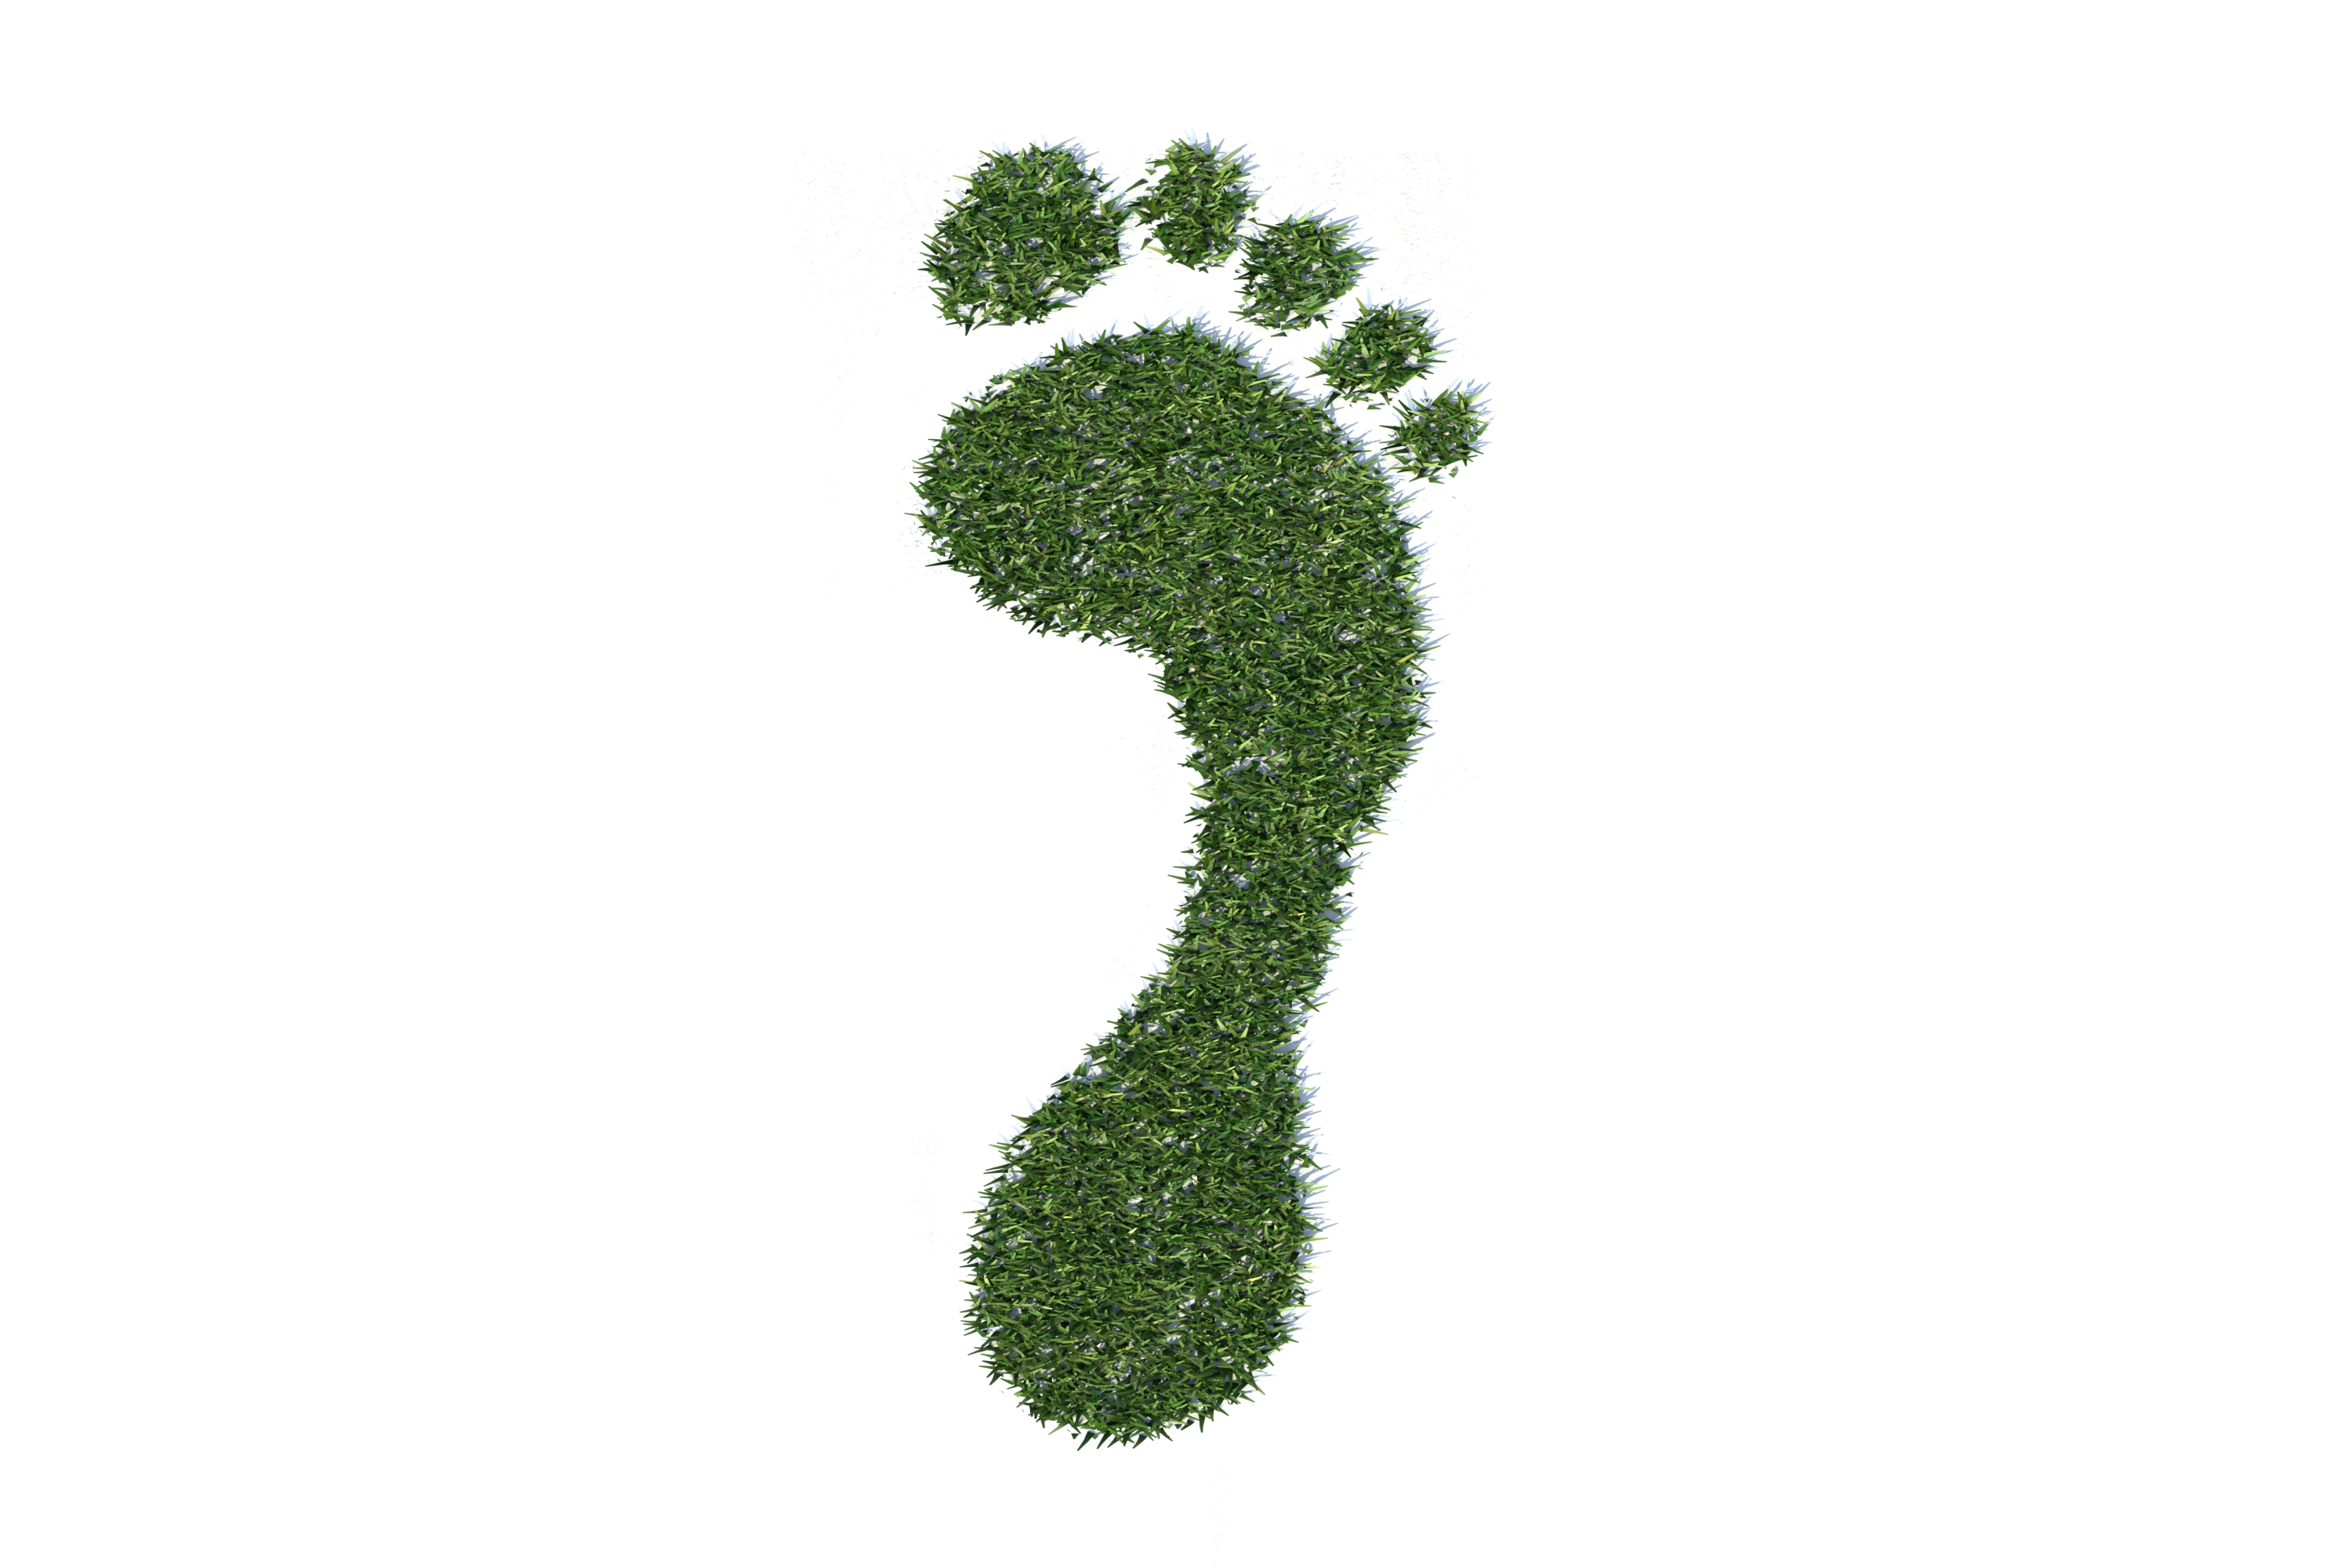 5 Things You Could Do To Reduce Your Carbon Footprint